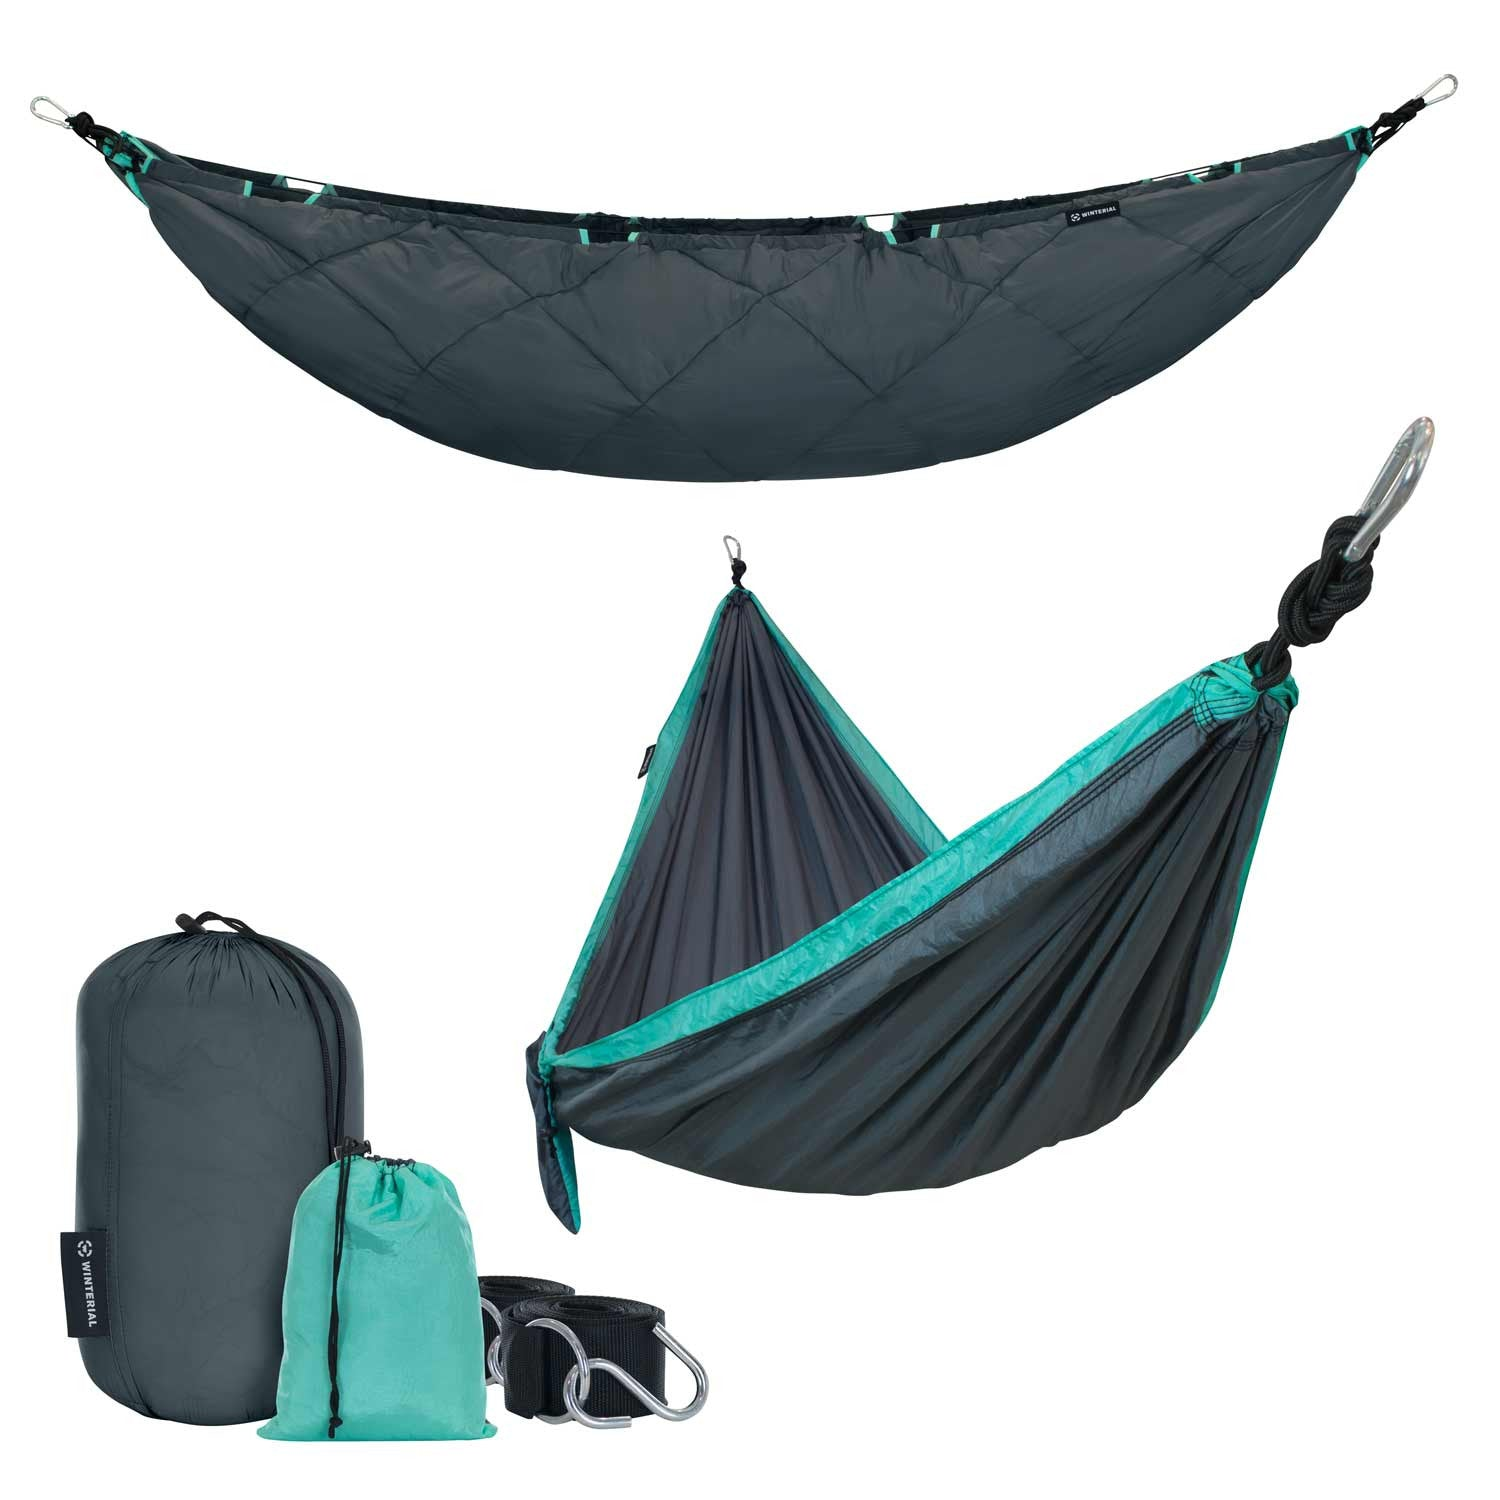 Medium image of underquilt goose down hammock